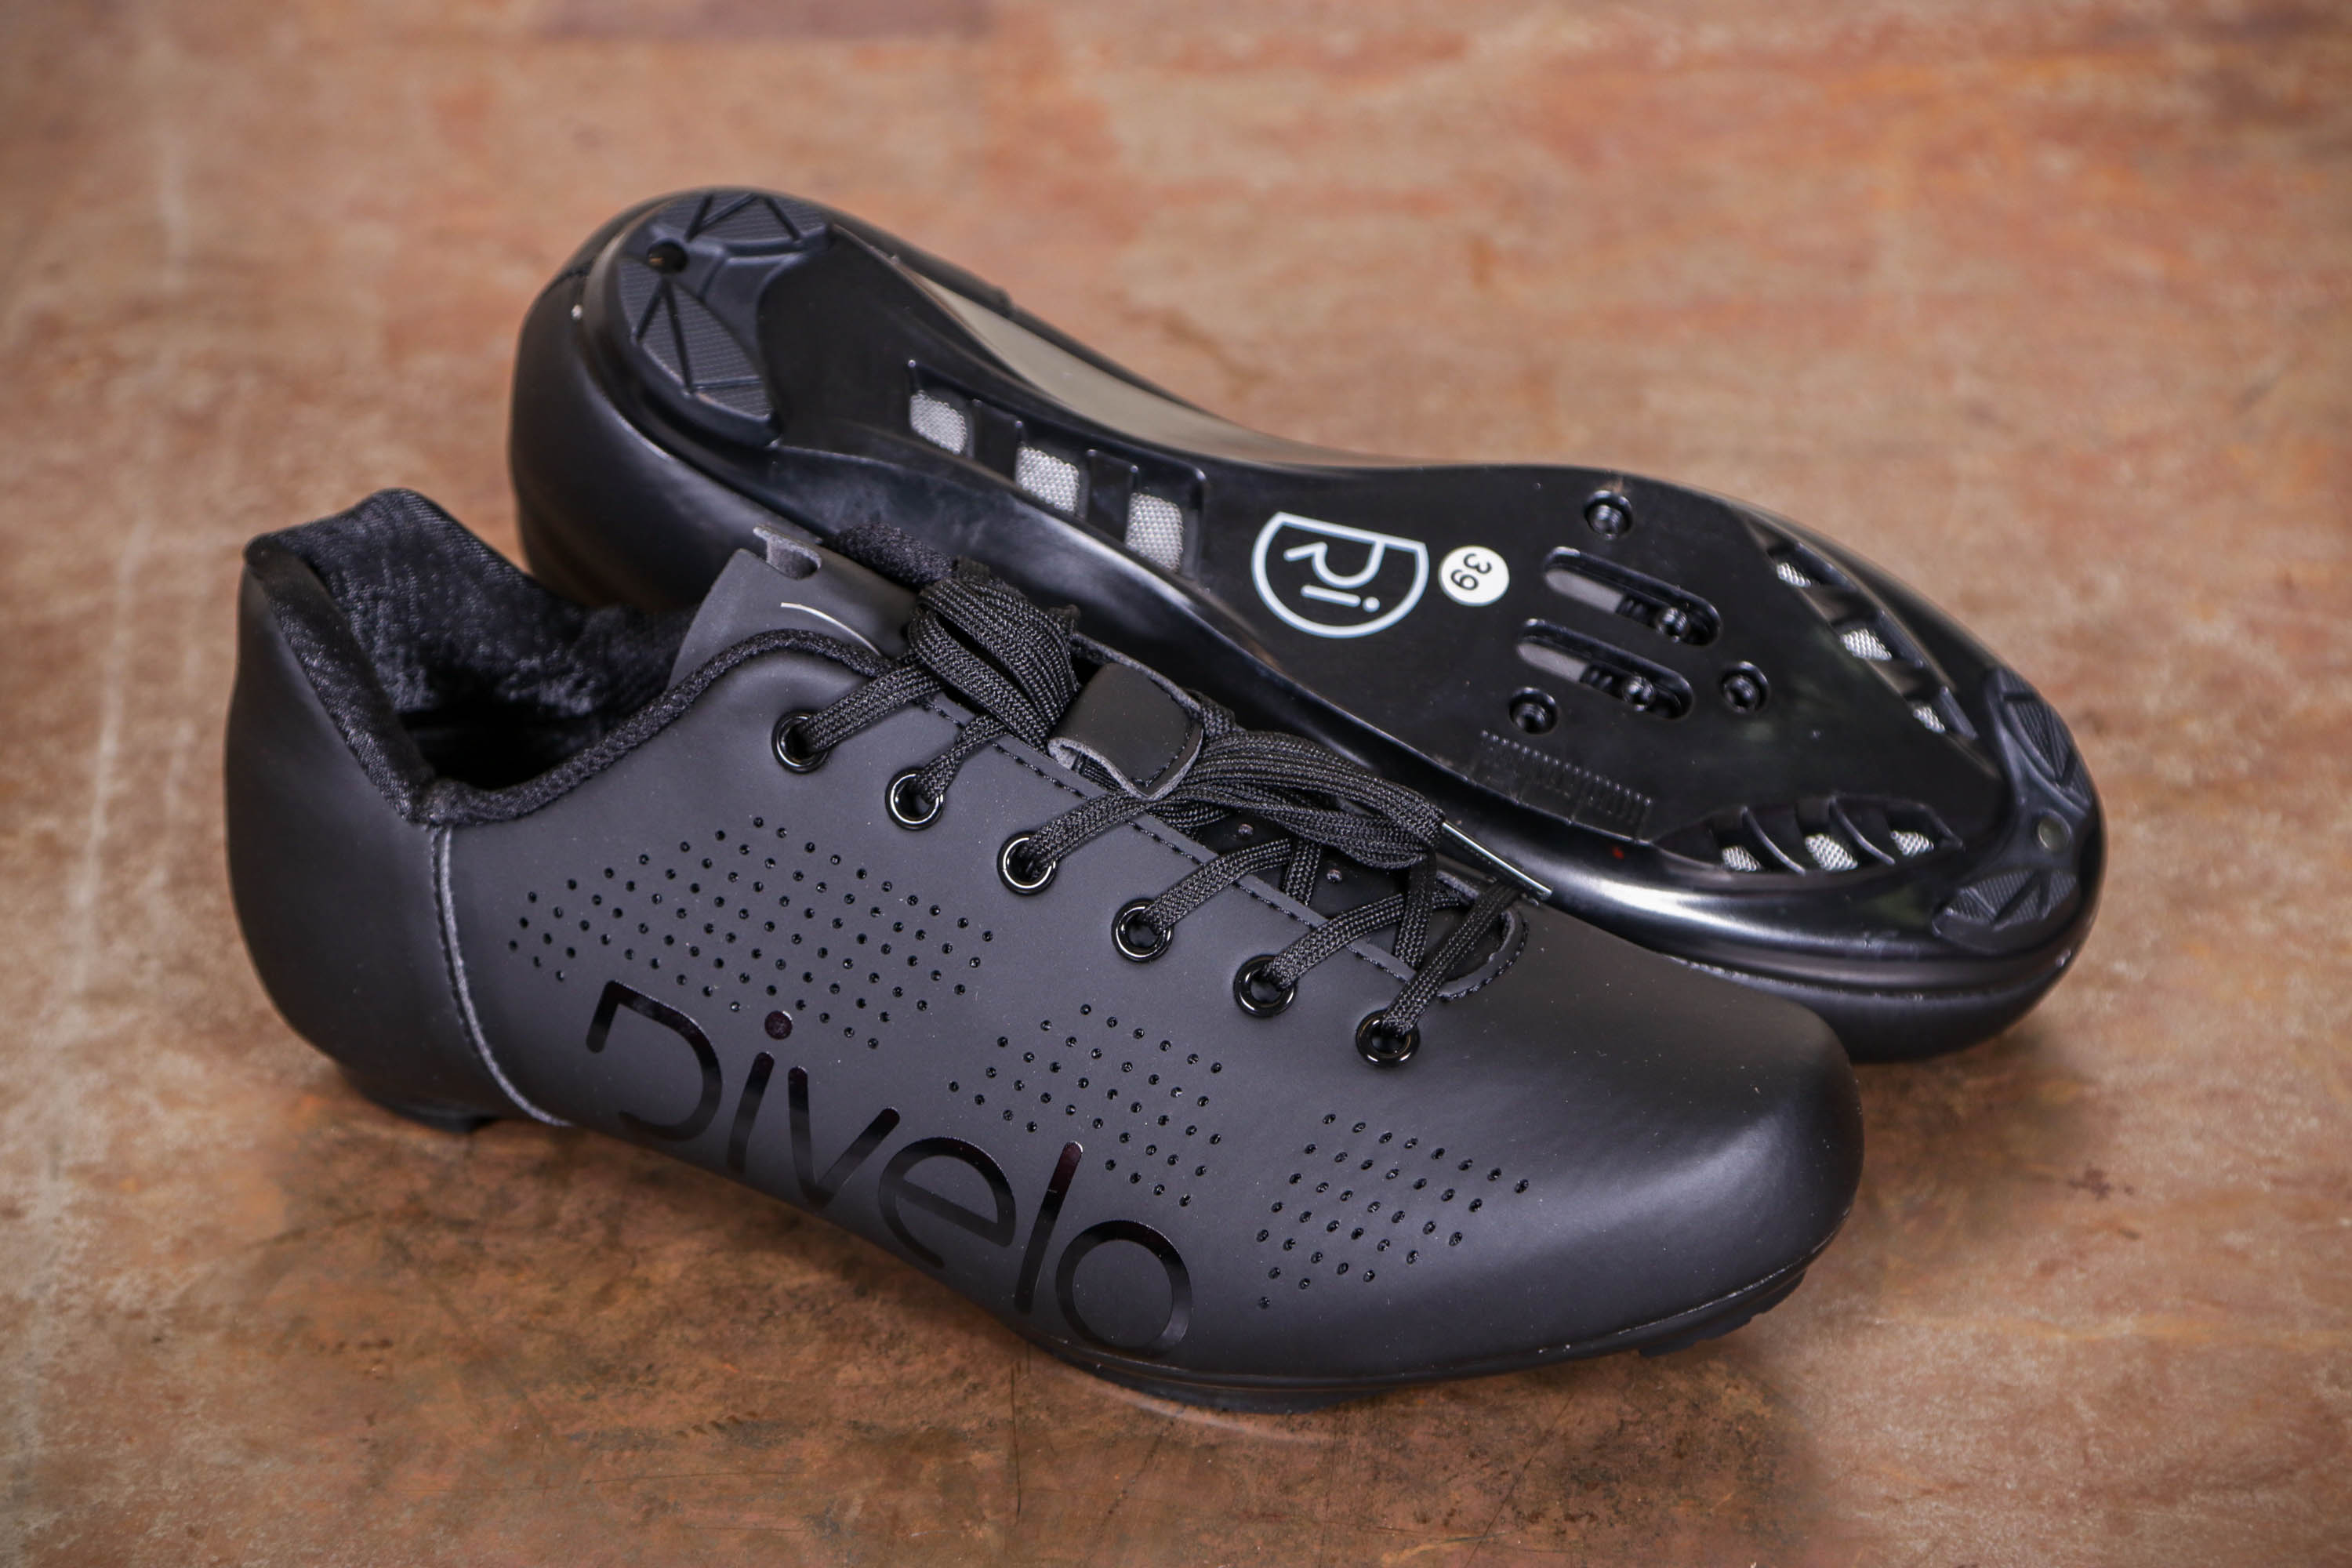 Details about  /RIVELO Penbarras Cycling Shoes NAVY